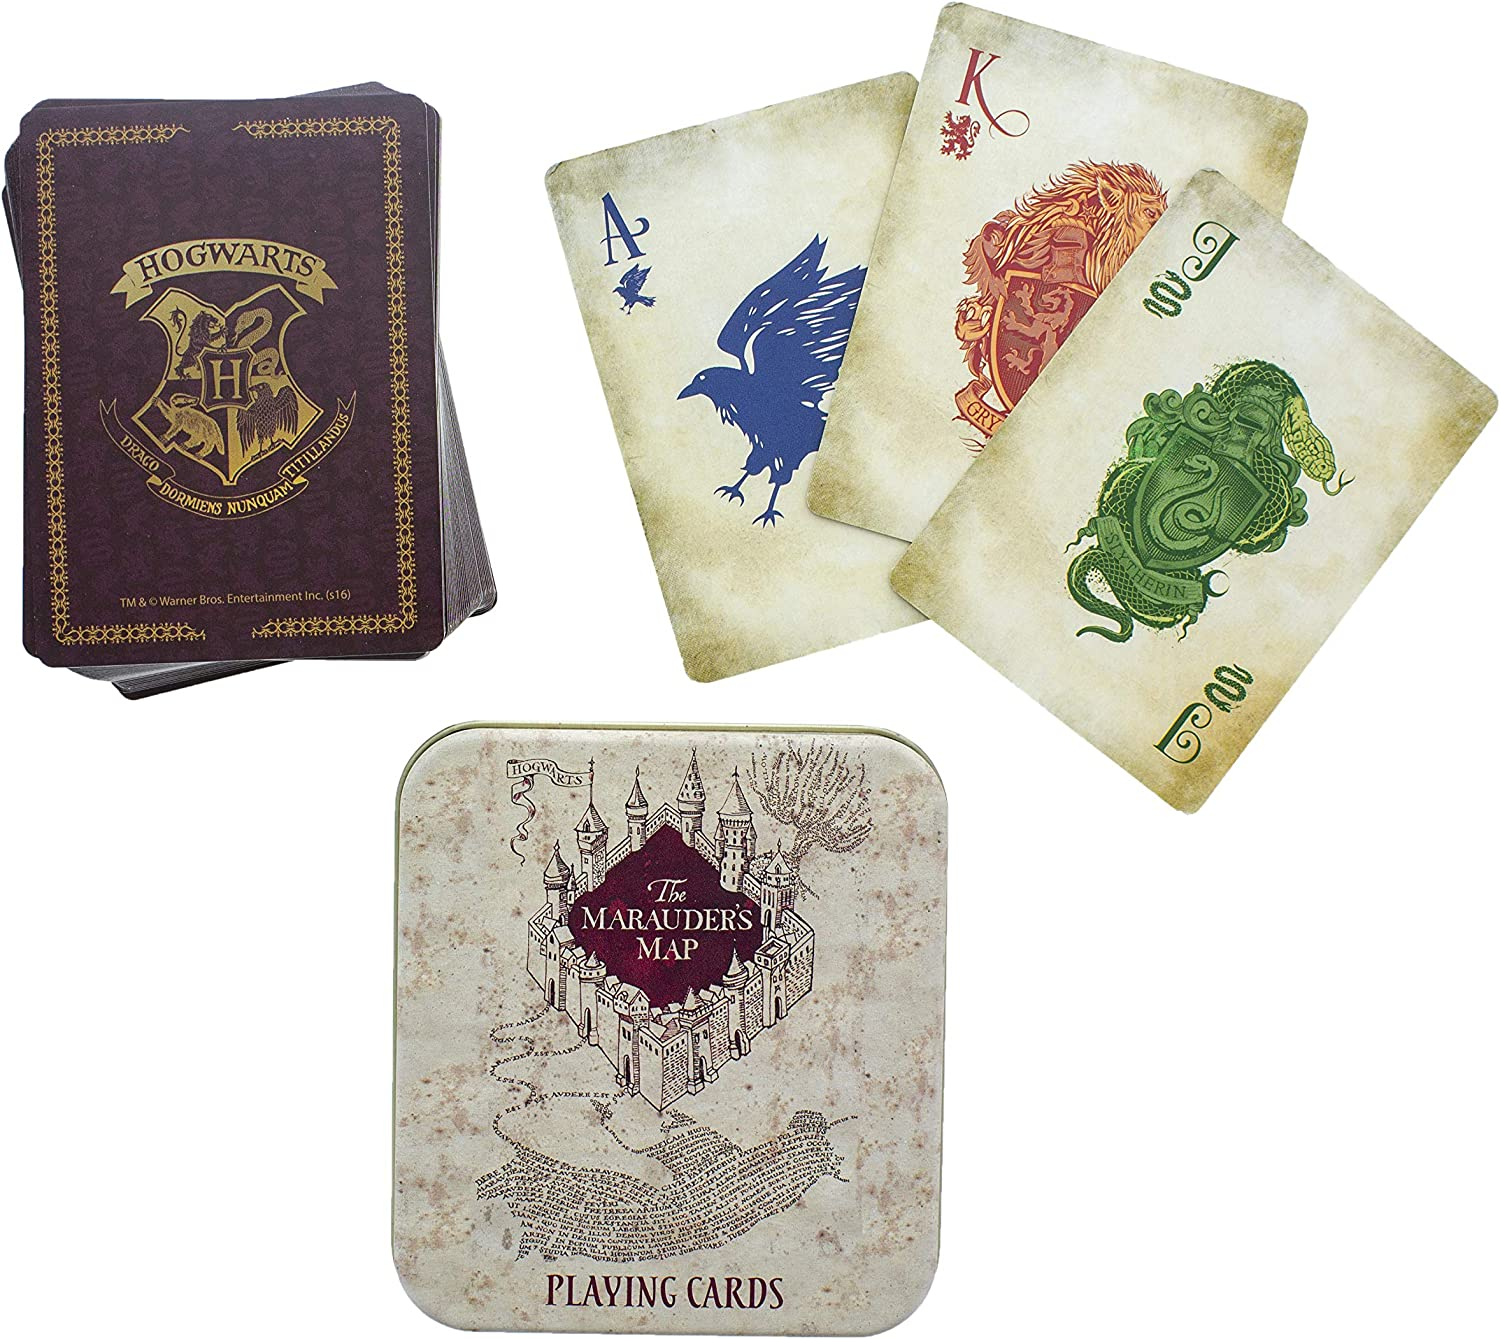 Includes Collectors Embossed Storage Tin Poker /& Blackjack Set Of 52 Featuring Hogwarts Villains Ideal For Games Harry Potter Death Eater Dark Arts Playing Cards